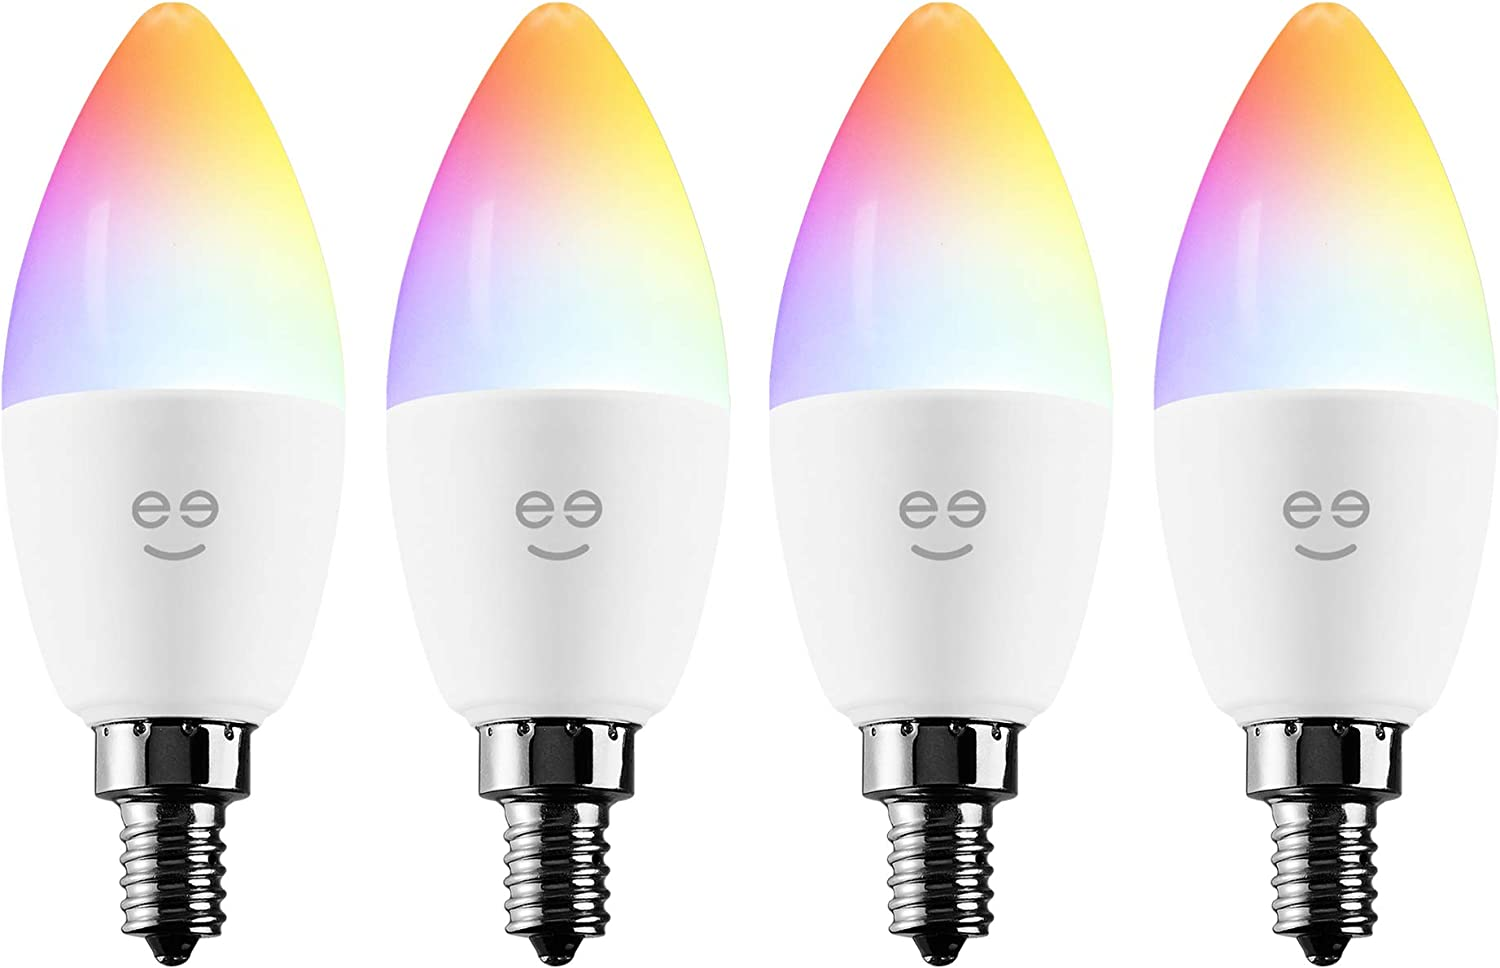 Geeni Prisma Plus Candle Wi-Fi LED Smart Bulb, B11 Candelabra, 4W, E12 Base 350lm Tunable and Dimmable RGB Bulb, Compatible with Alexa and The Google Assistant, No Hub Required (4 Pack)